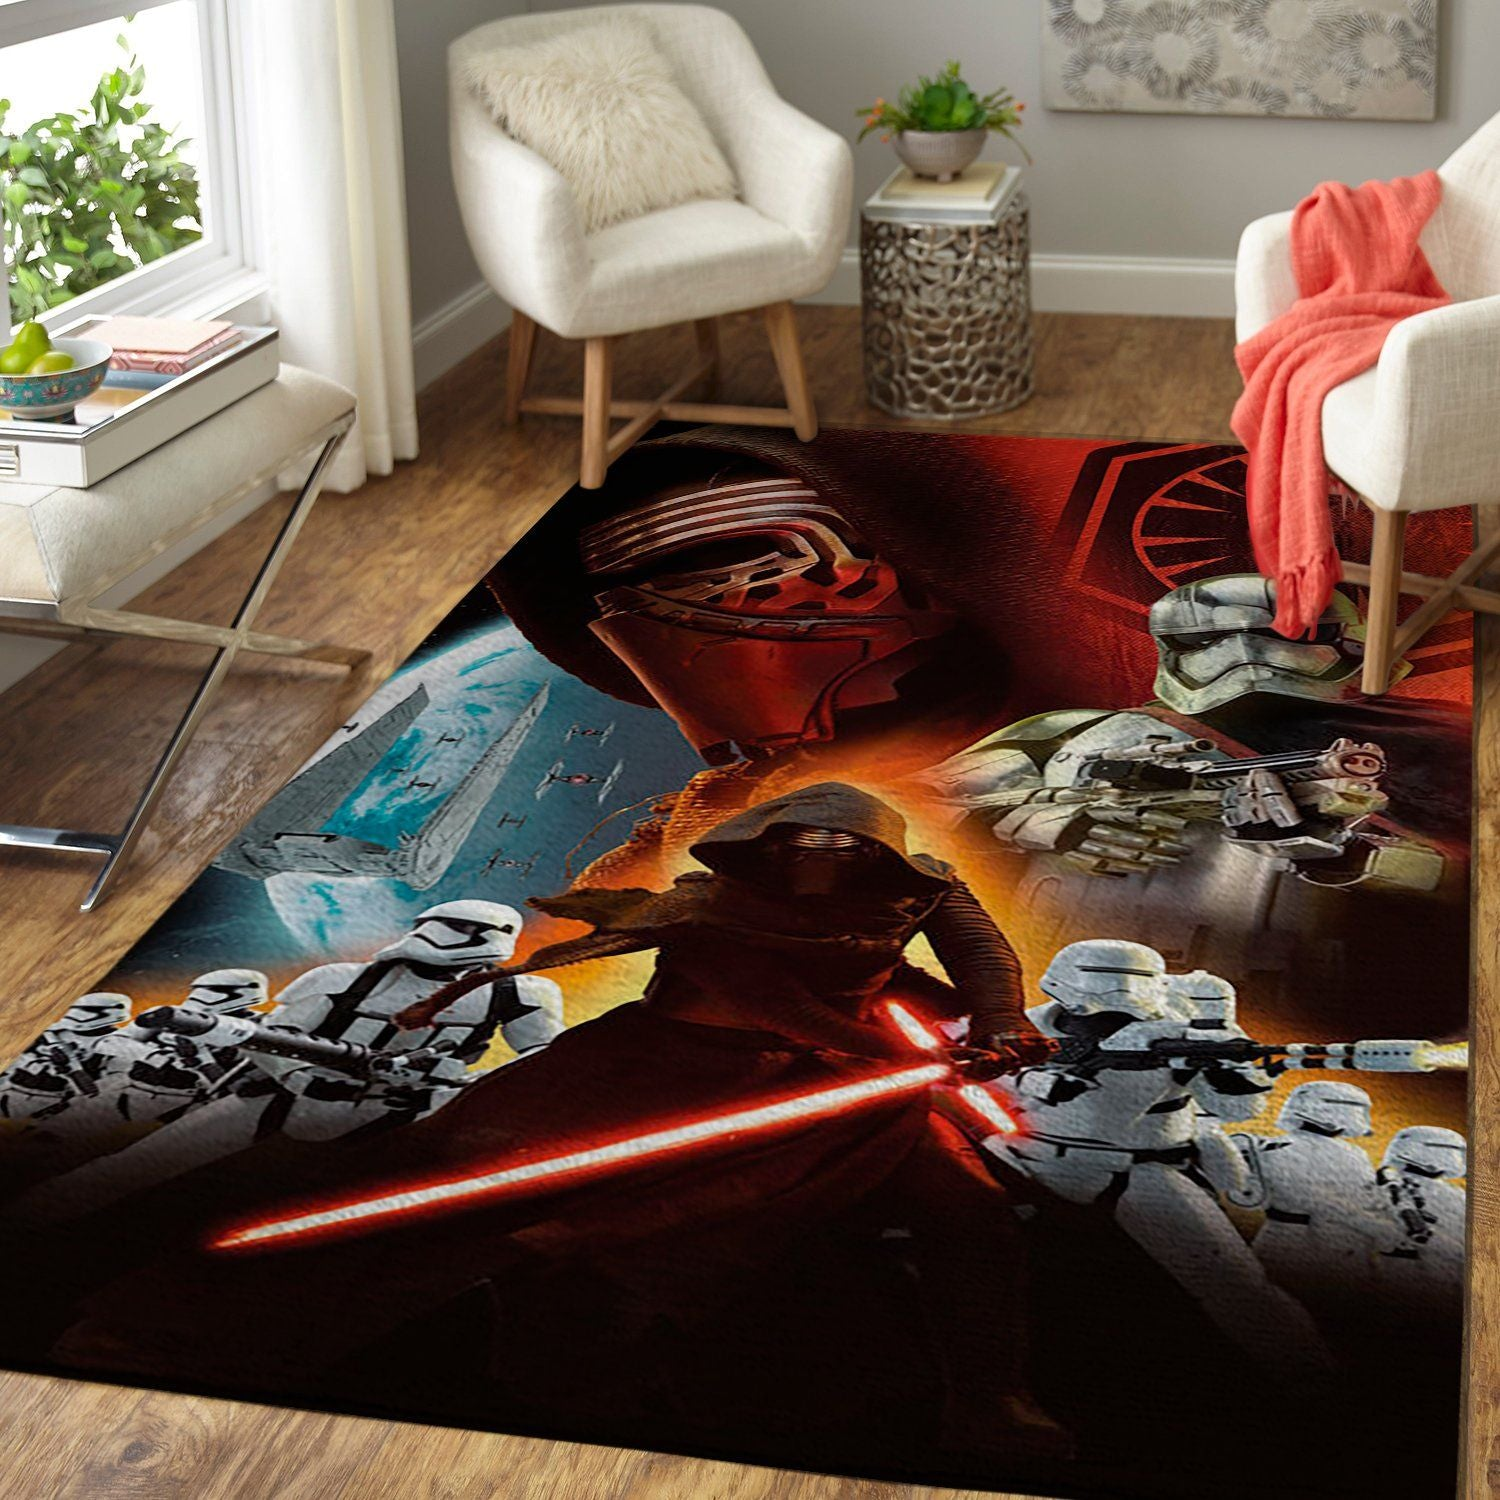 Star Wars Area Rug - The Force Awakens / Movie Floor Decor 190901A